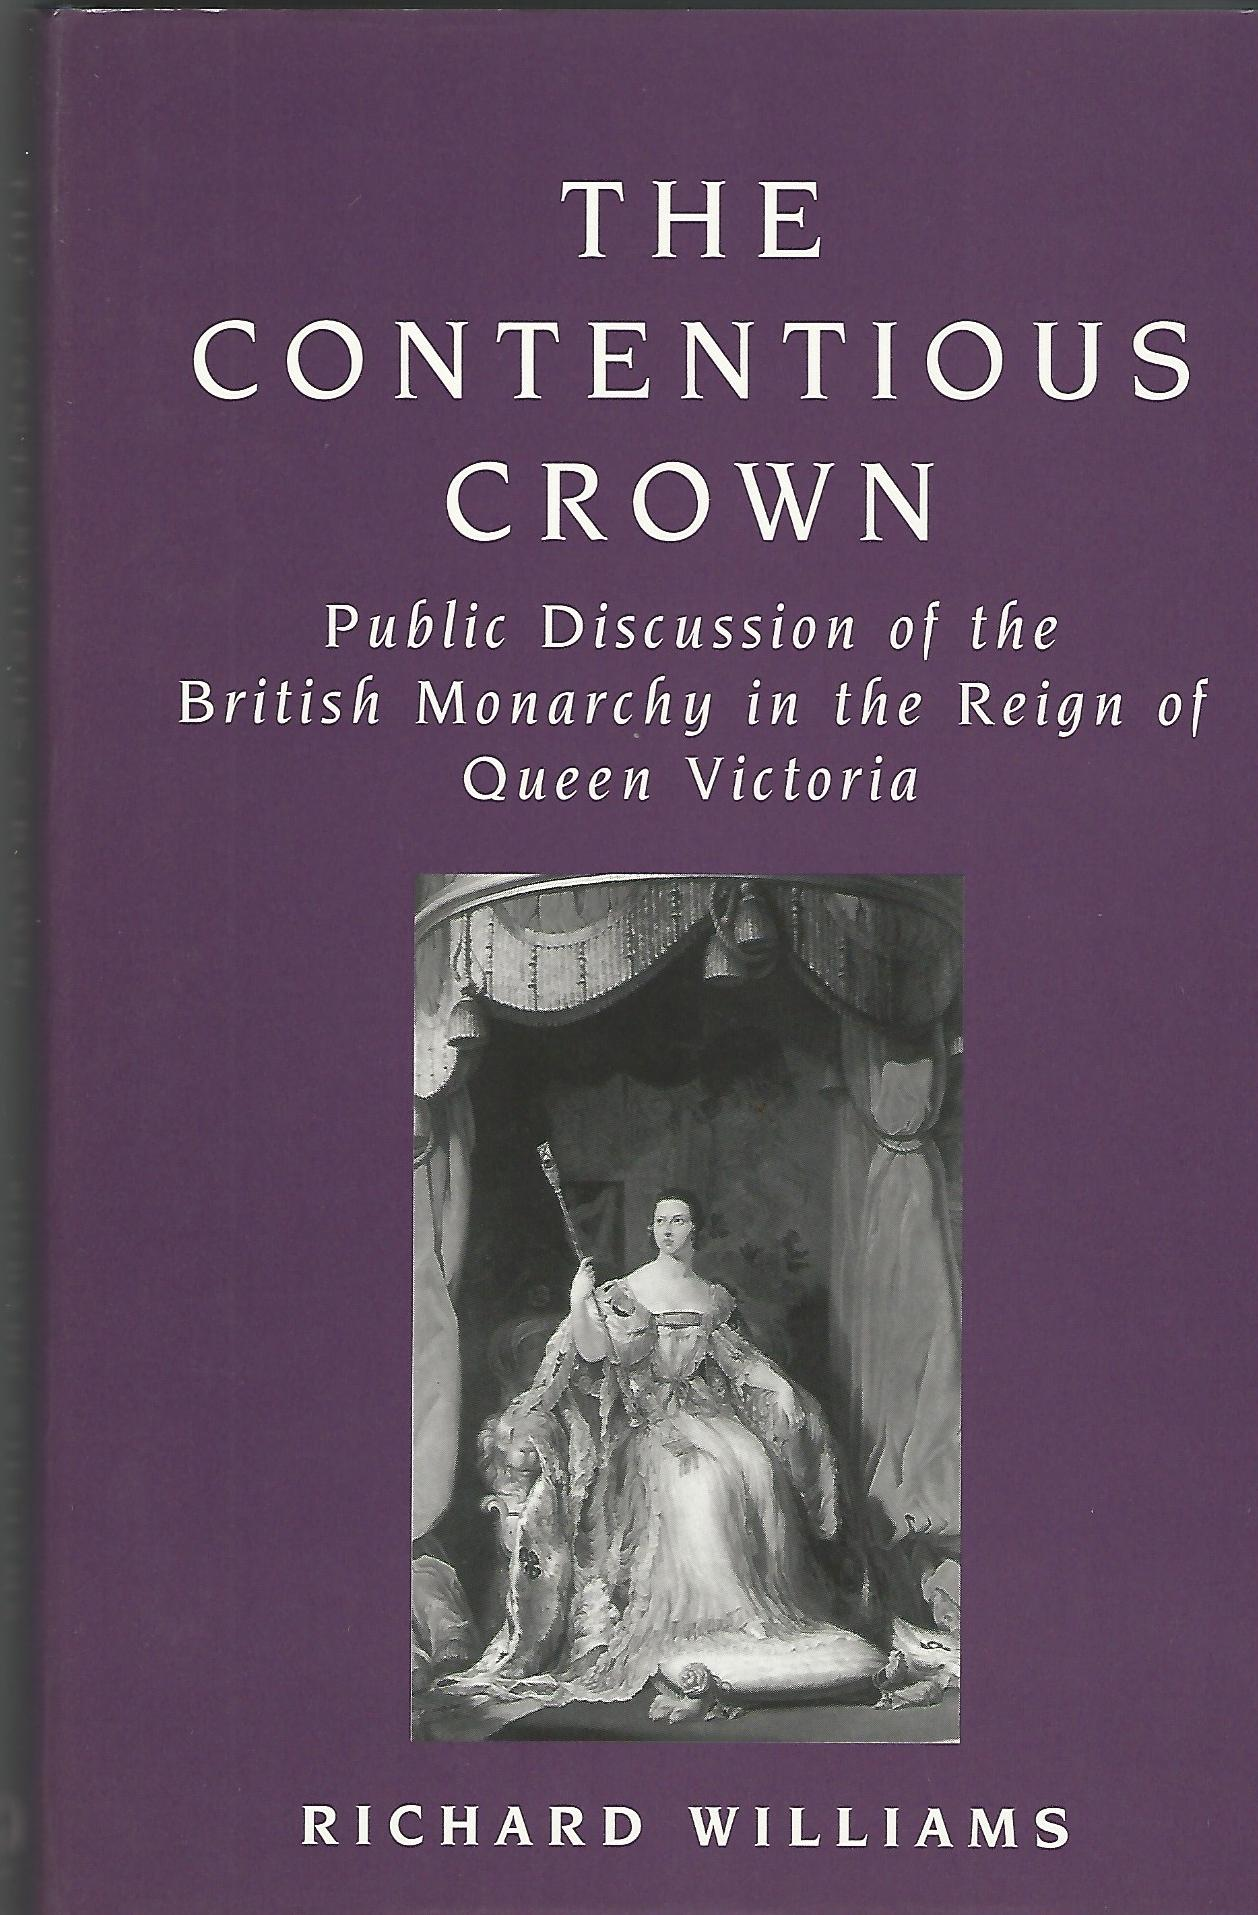 Image for The Contentious Crown: Public Discussion of the British Monarchy in the Reign of Queen Victoria.